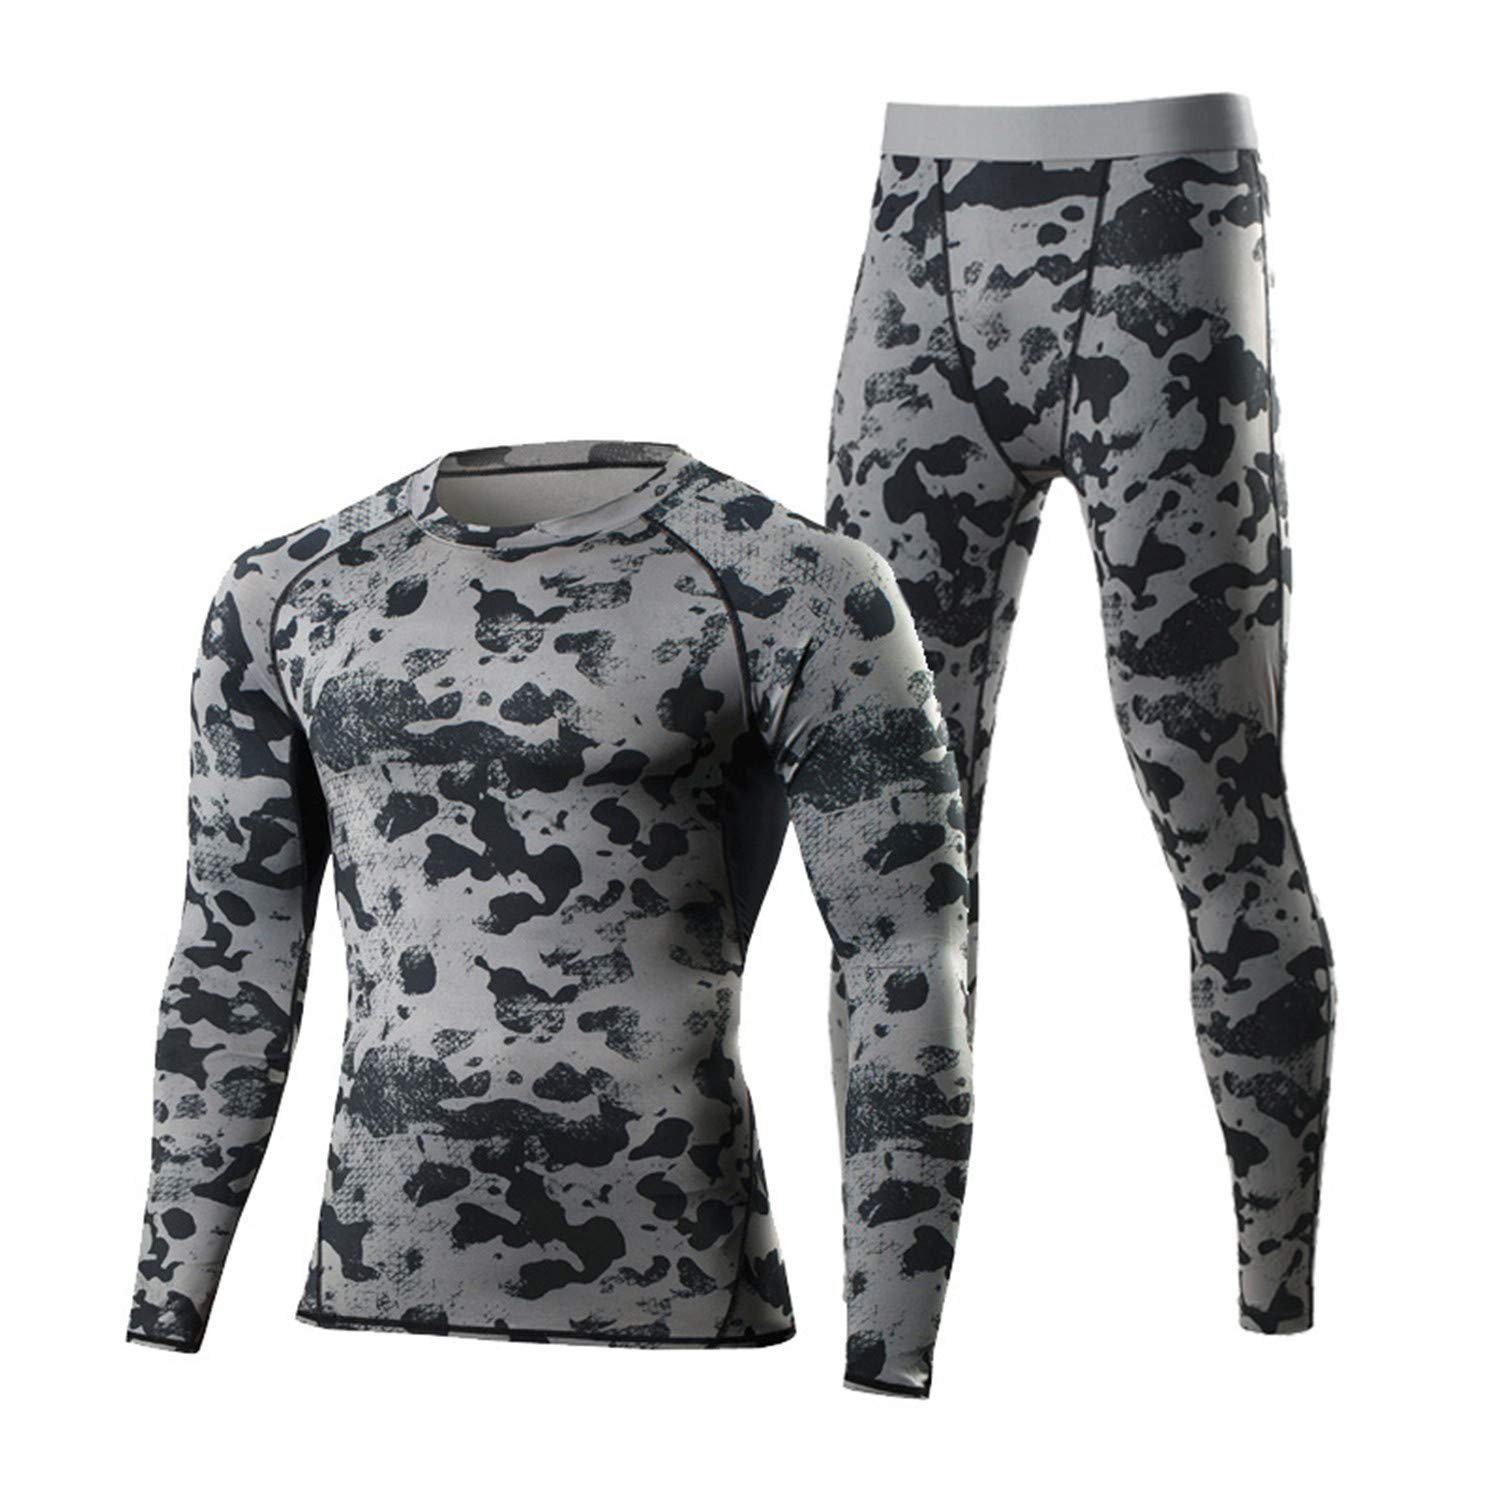 Thermal Underwear Set Men Winter Thermo Underwear Soft Comfortable Stretch Man Warm Long Male Riding Fast-Try Clothe